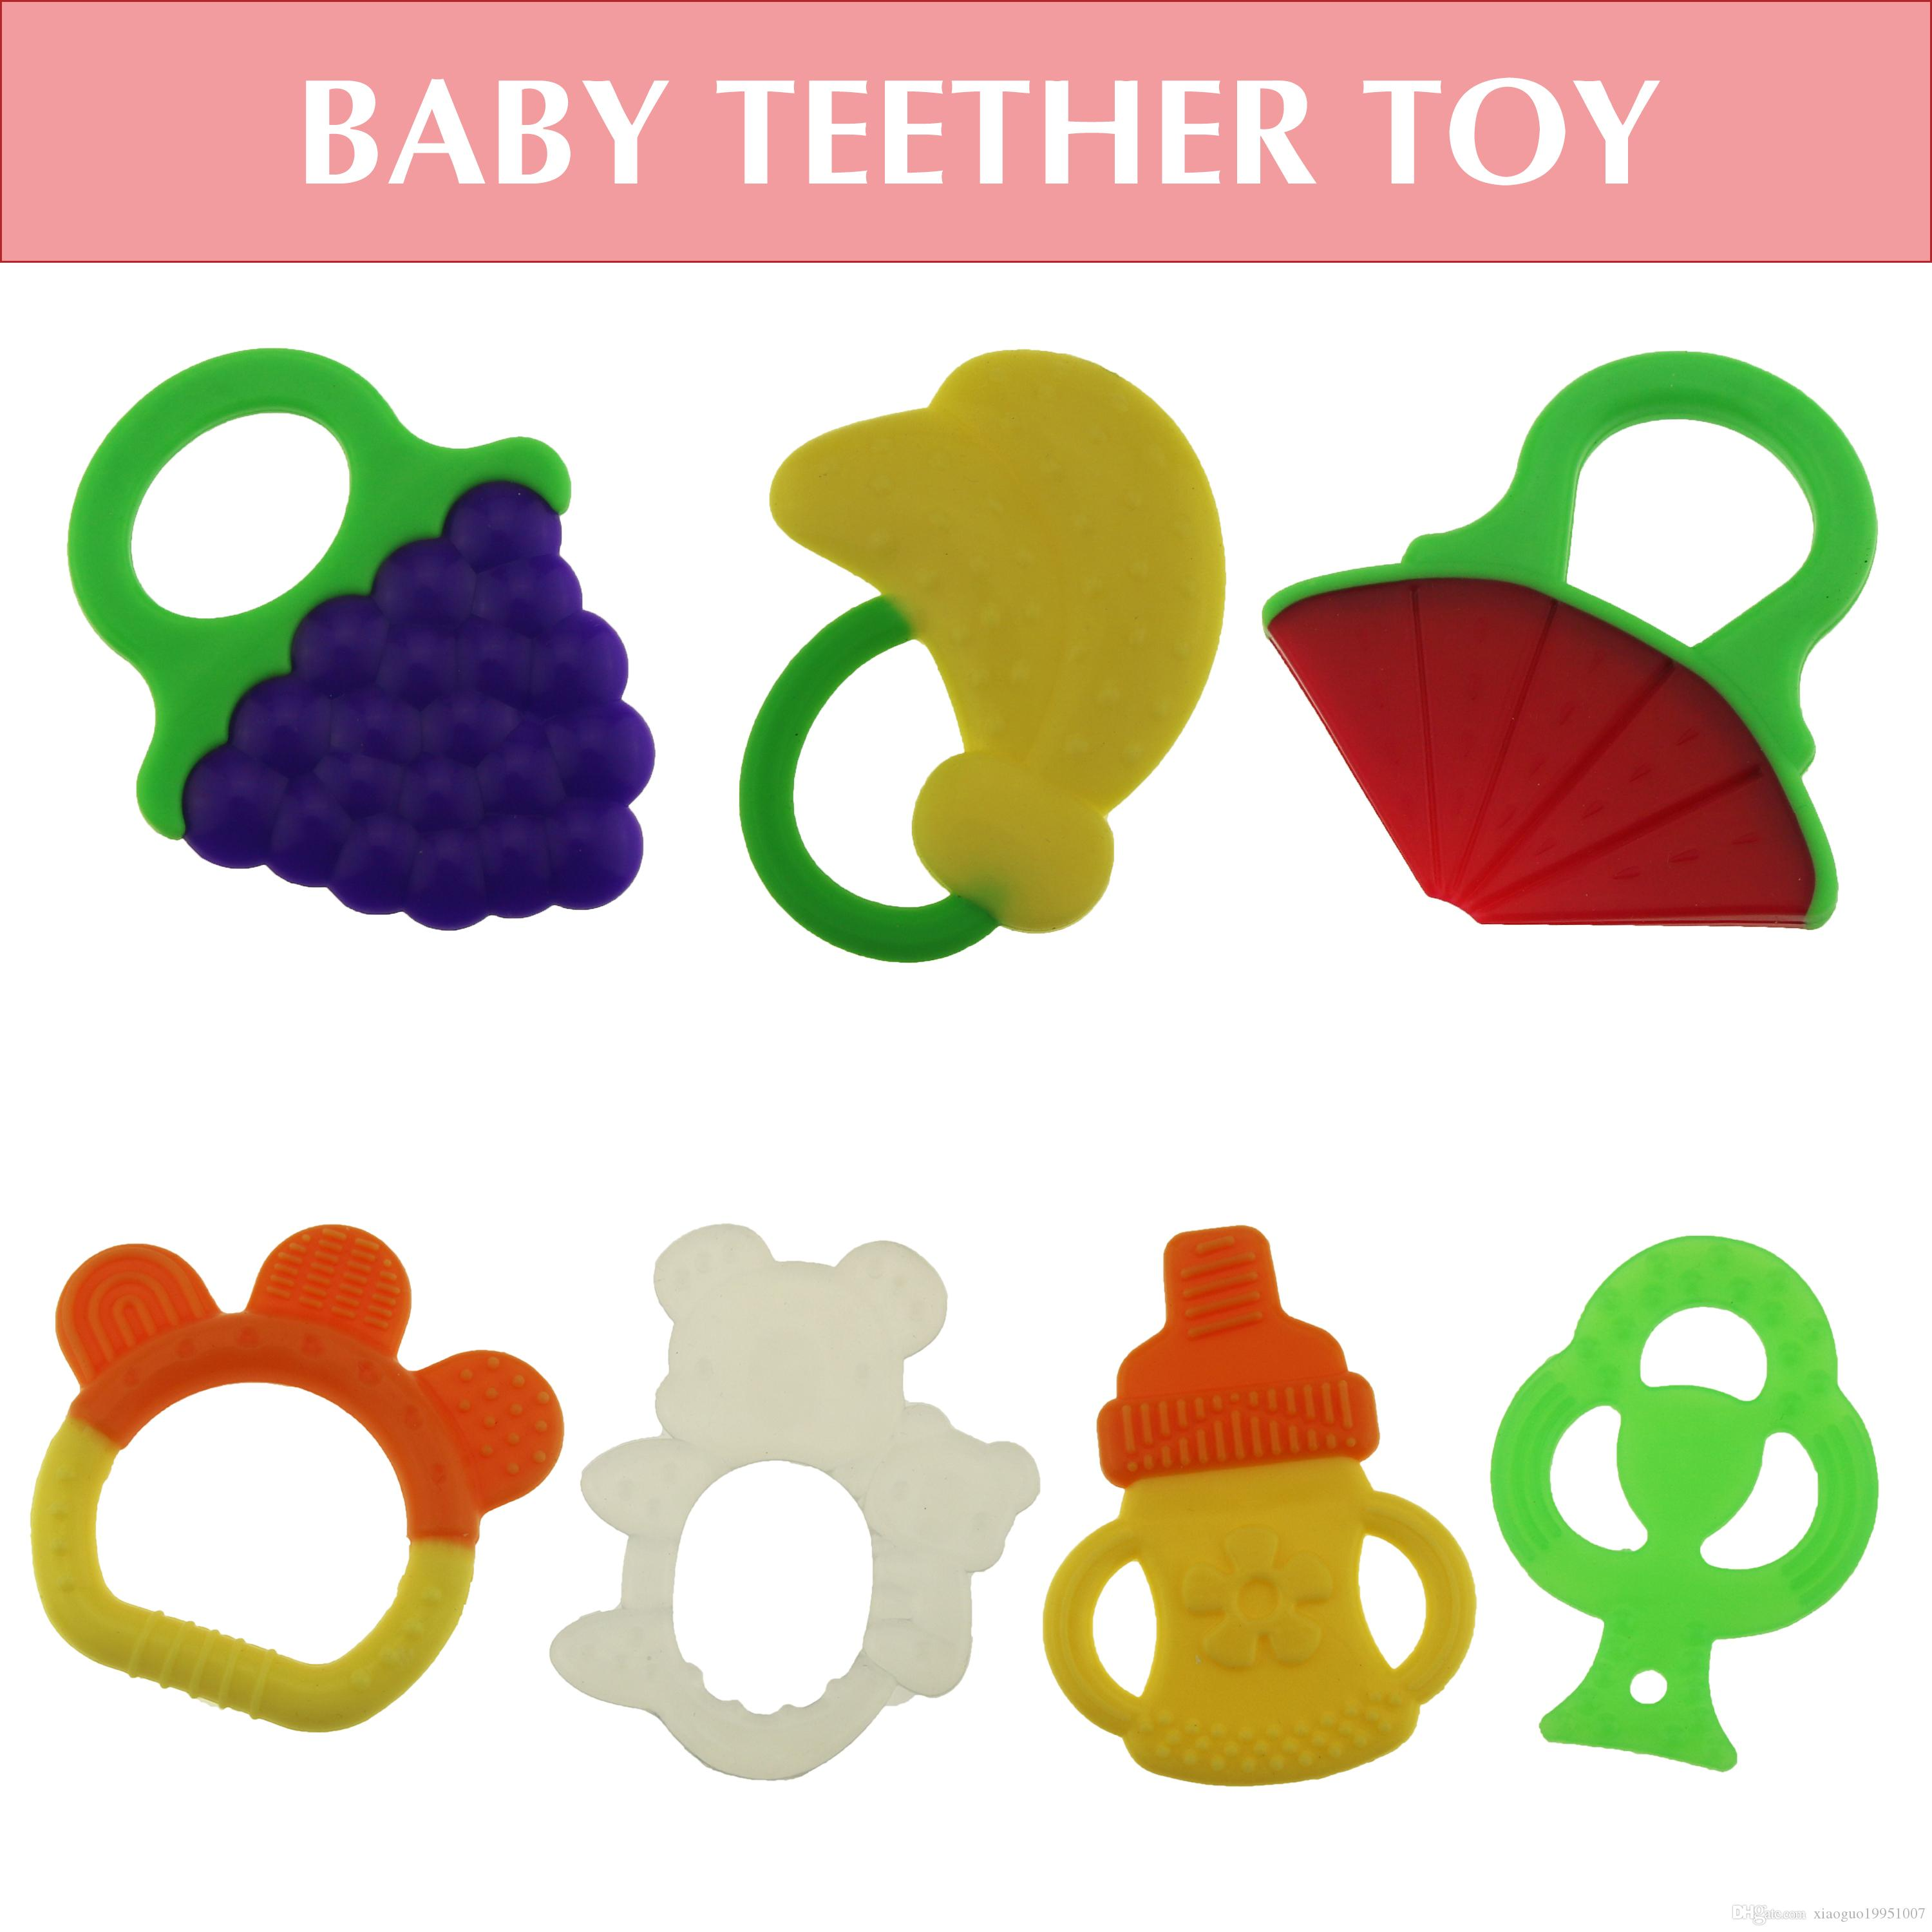 2017 Cute Baby Teether Toy Novel Fruit Design Easy To Grasp Infant